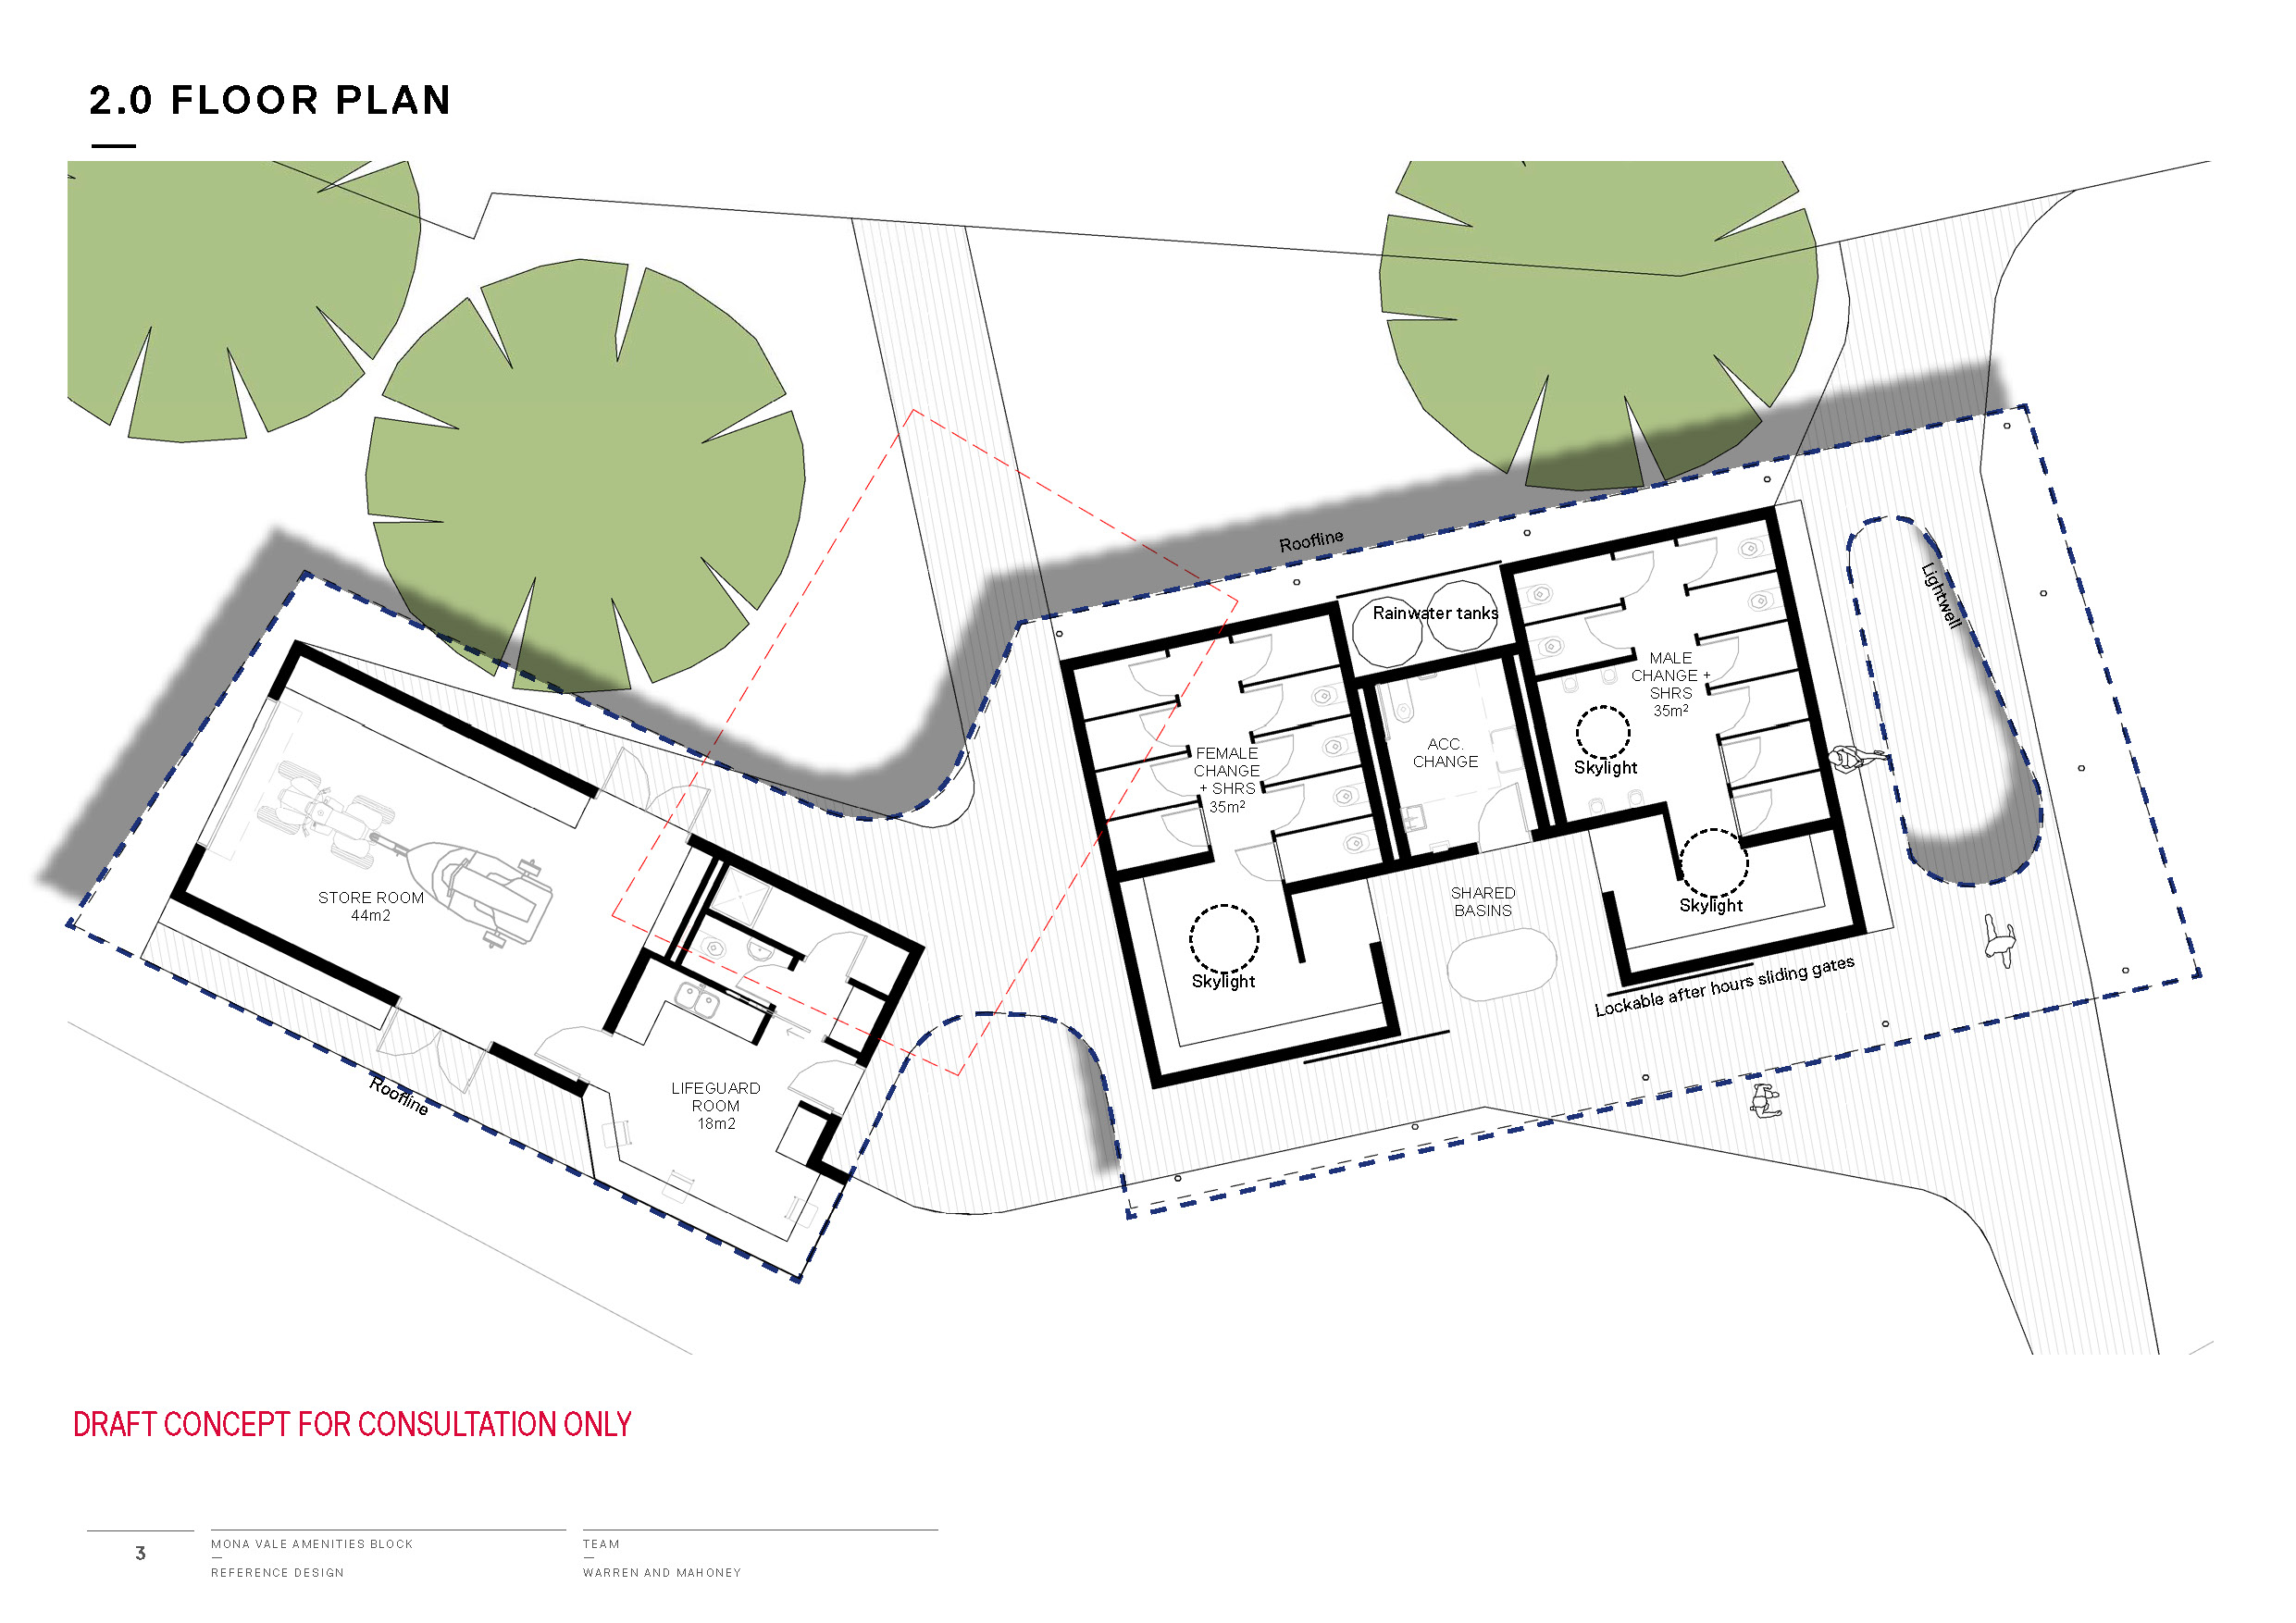 Mona Vale Beach Amenities Concept floorplan